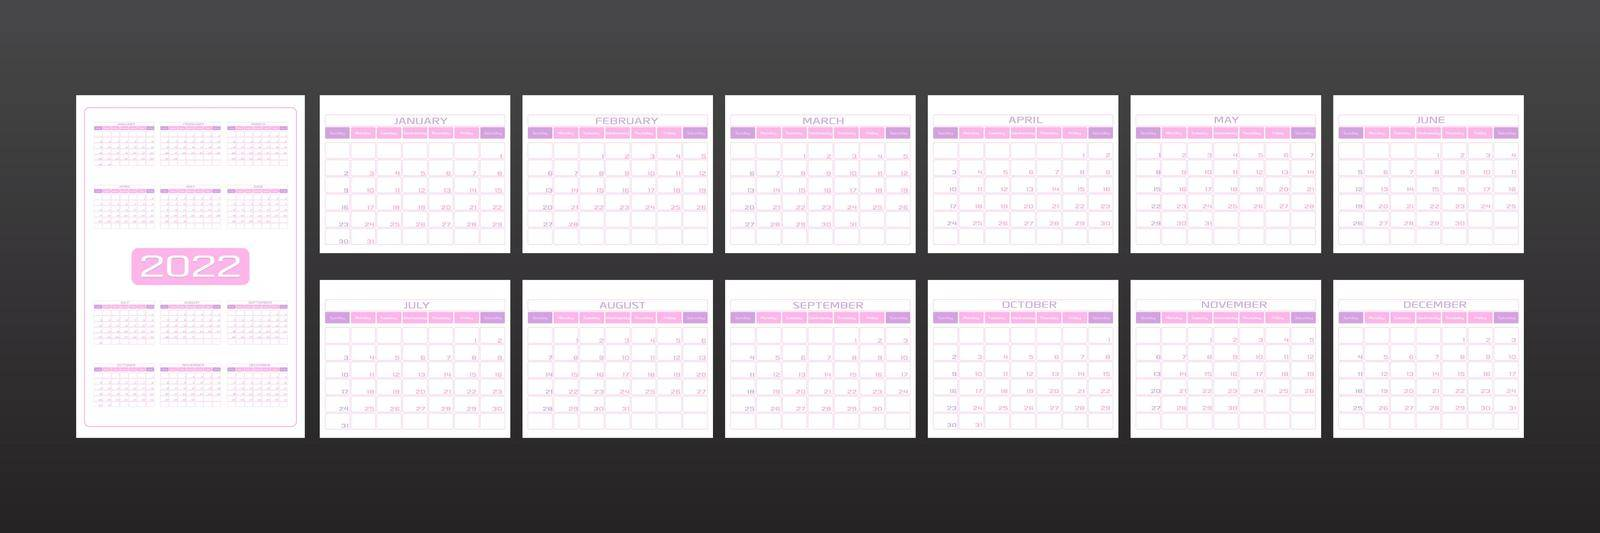 2022 calendar in minimalistic urban trendy style. set of 12 months template daily planner to-do list for every day. rounded streamlined shape, delicate light pink color. week starts on Sunday.